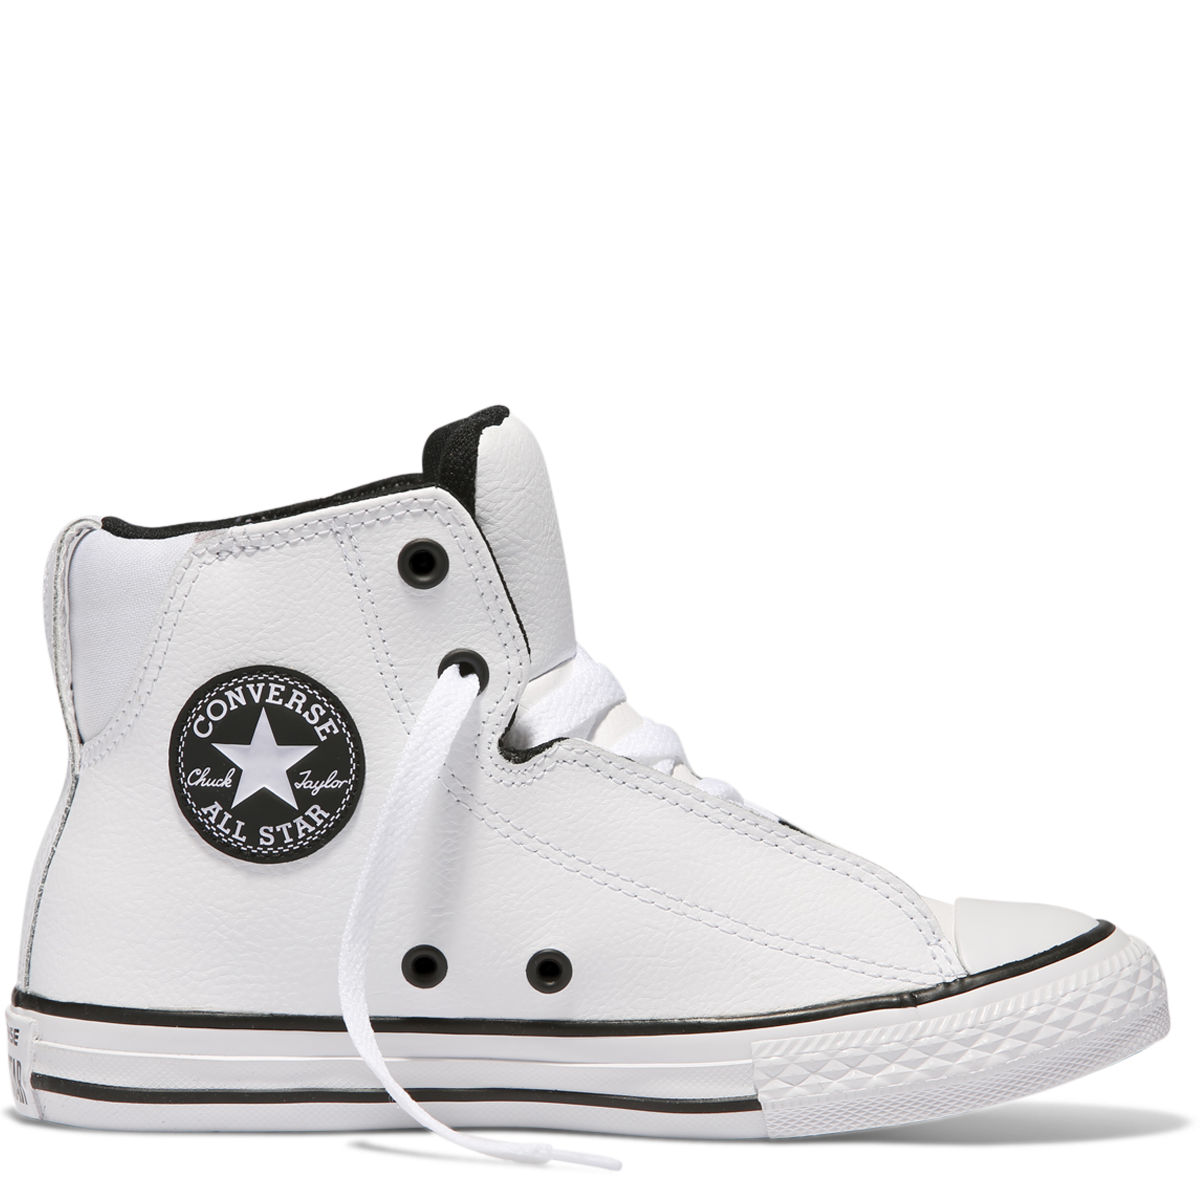 21219749fb35bd Chuck Taylor Youth All Star Legit Leather High Top White 655997C Famous  Rock Shop 517 Hunter ...